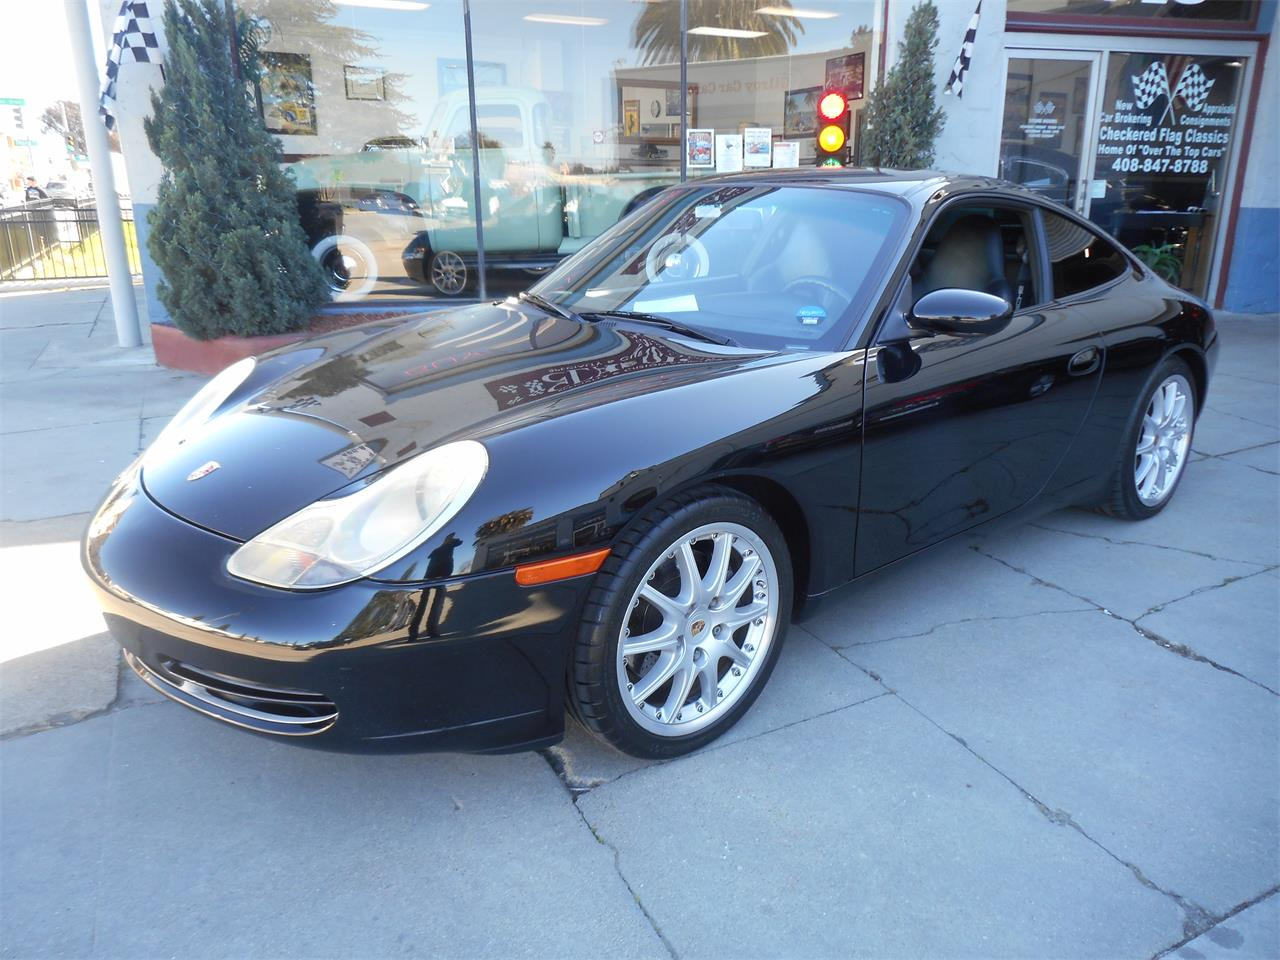 2000 Porsche 911 (CC-1196837) for sale in Gilroy, California